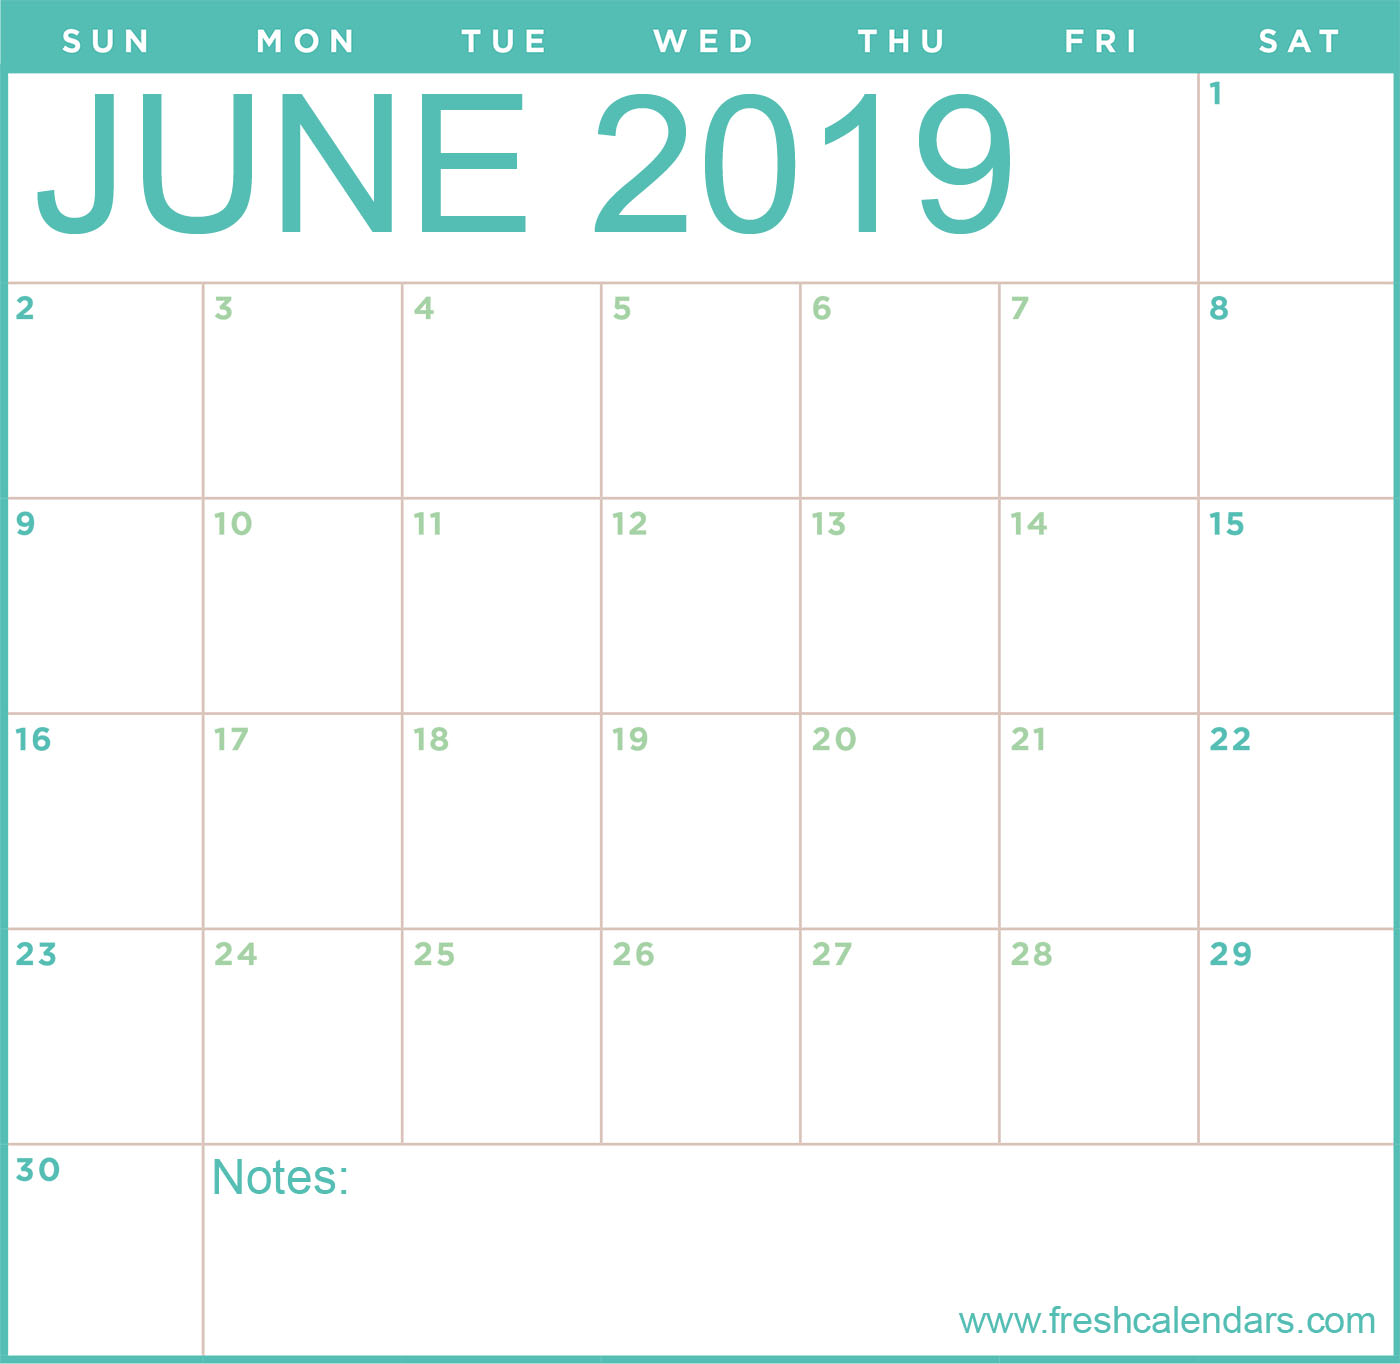 June 2019 Calendar Templates Online